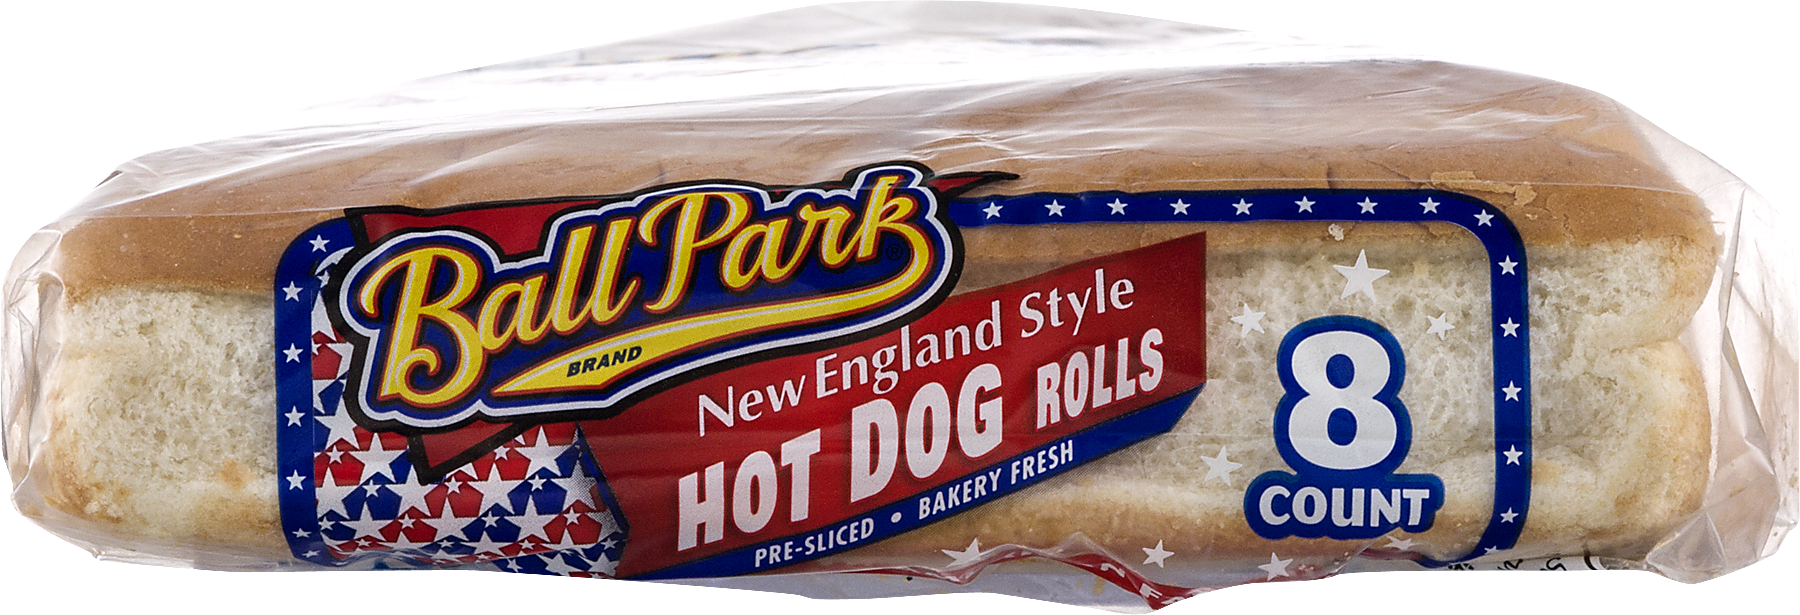 Ball Park New England Style Hot Dog Rolls, 8 Count, 12 Oz   Walmart.com